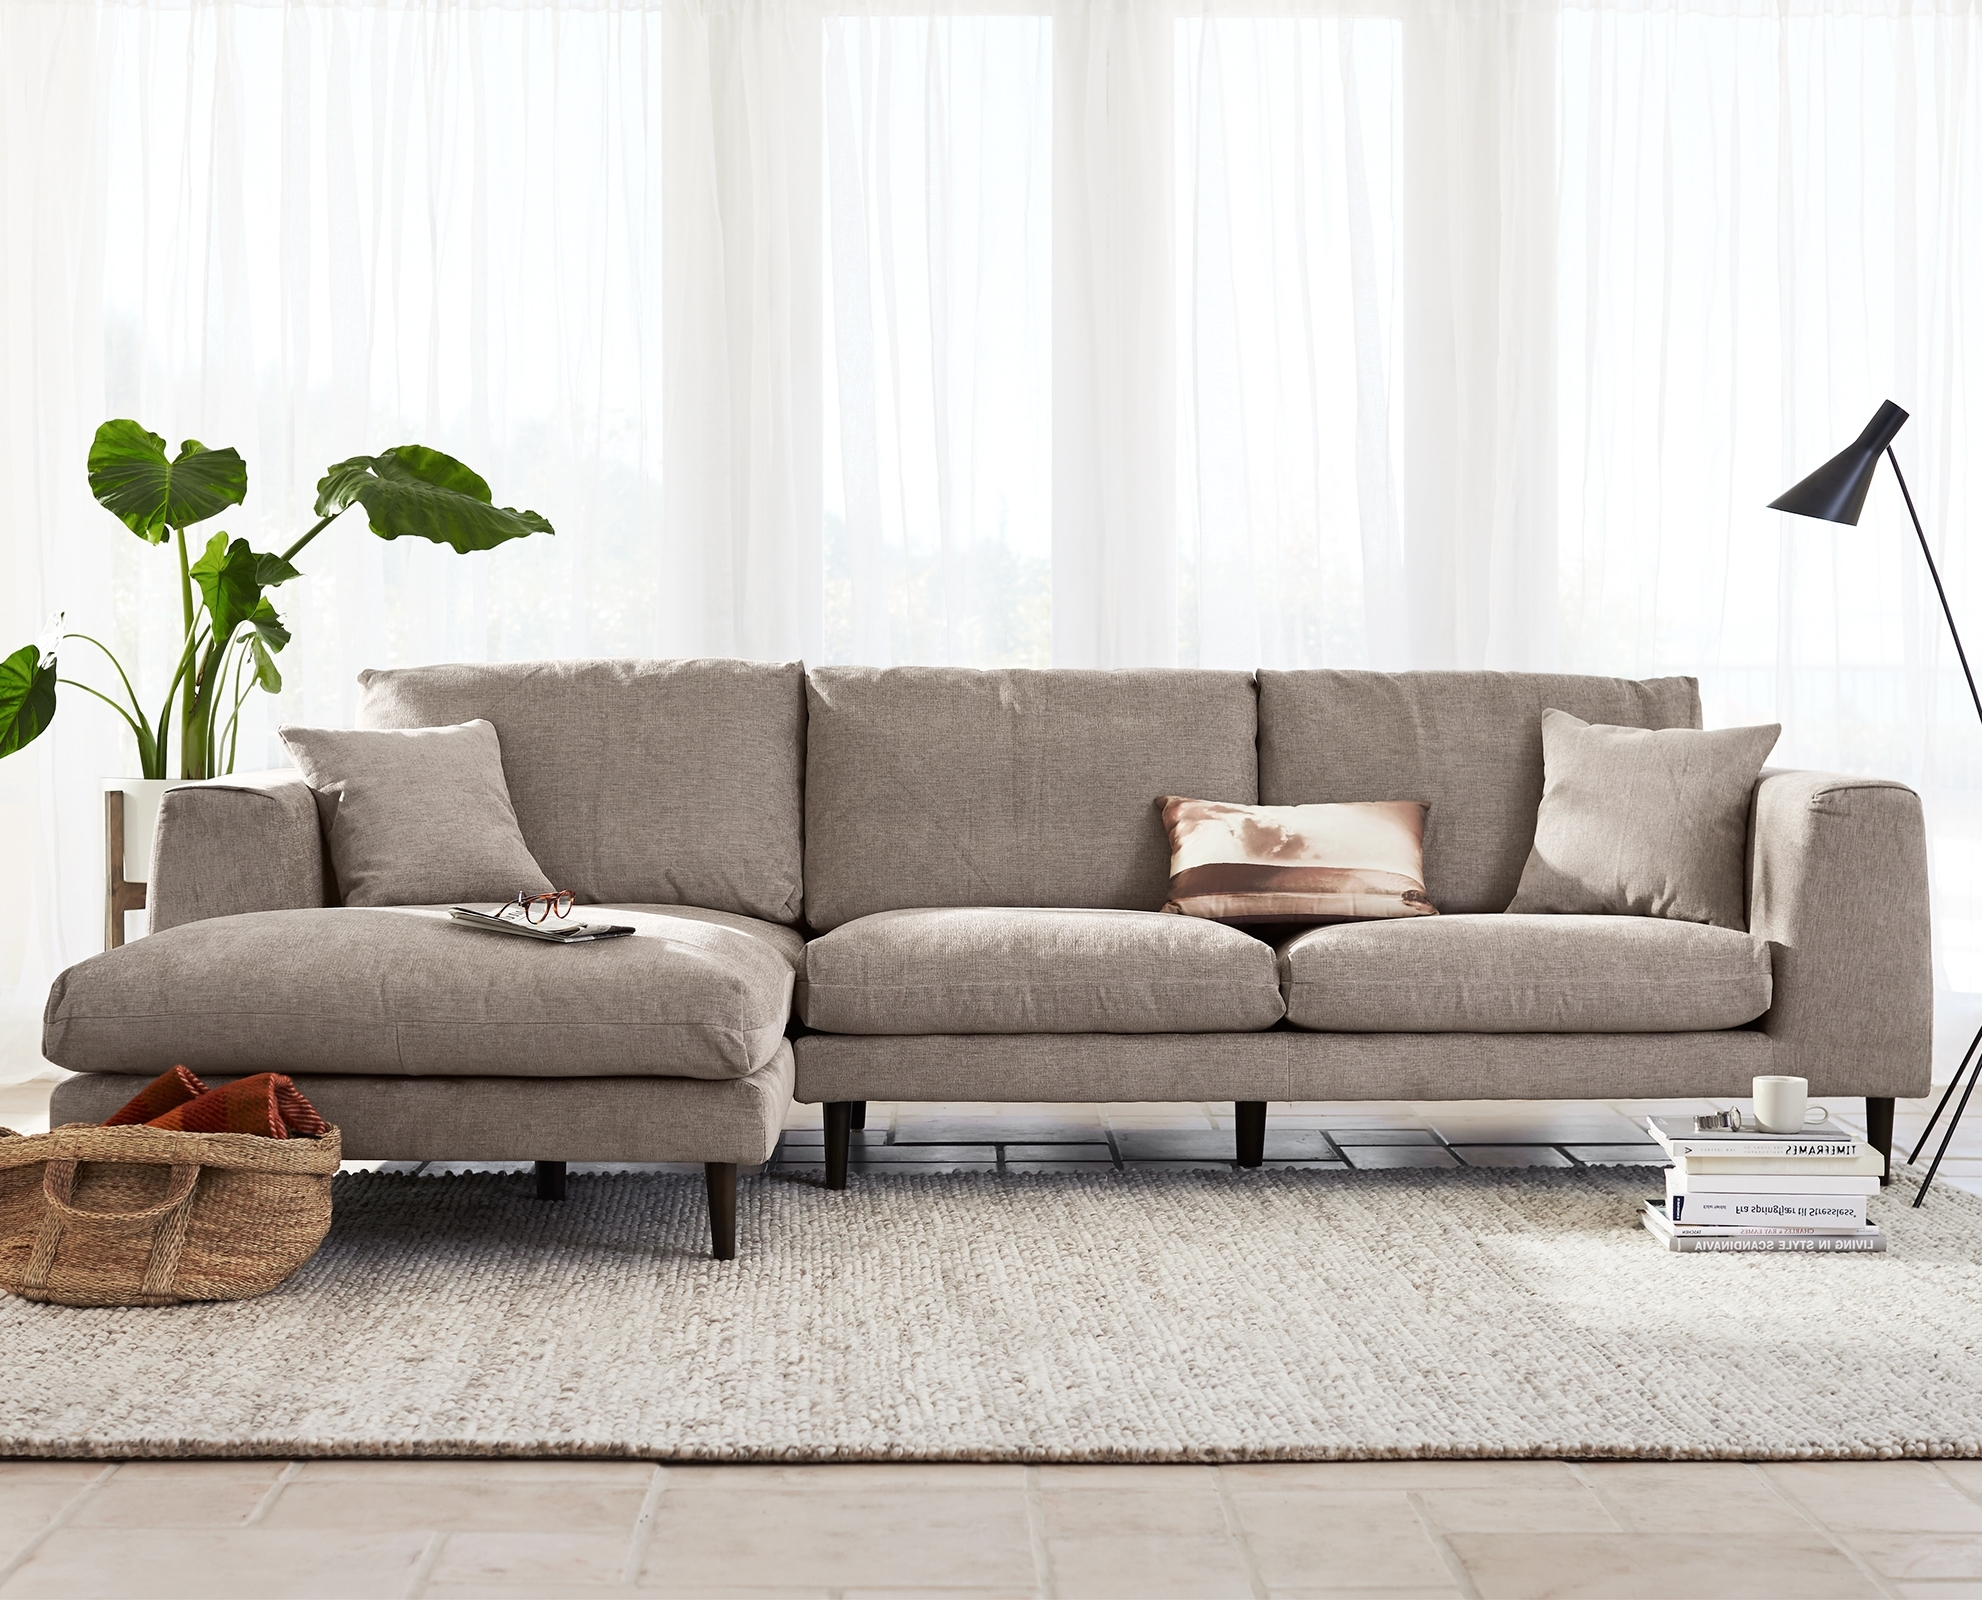 Latest Jorgen Chaise Sectional Gallery 19 Of 20